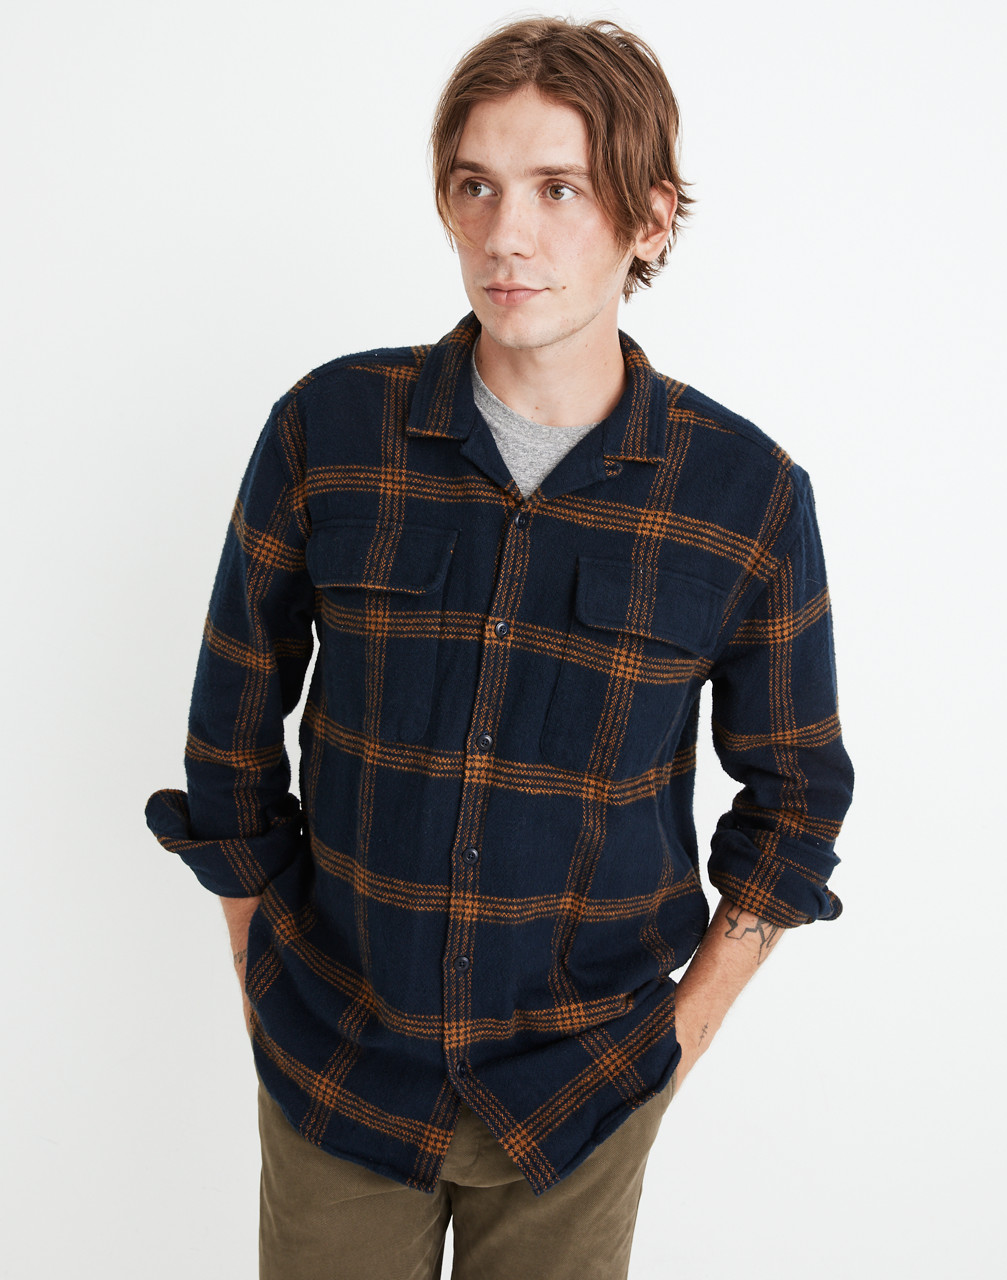 Men's Vintage Workwear Inspired Clothing Flannel Easy Long-Sleeve Camp Shirt in Windowpane $98.00 AT vintagedancer.com